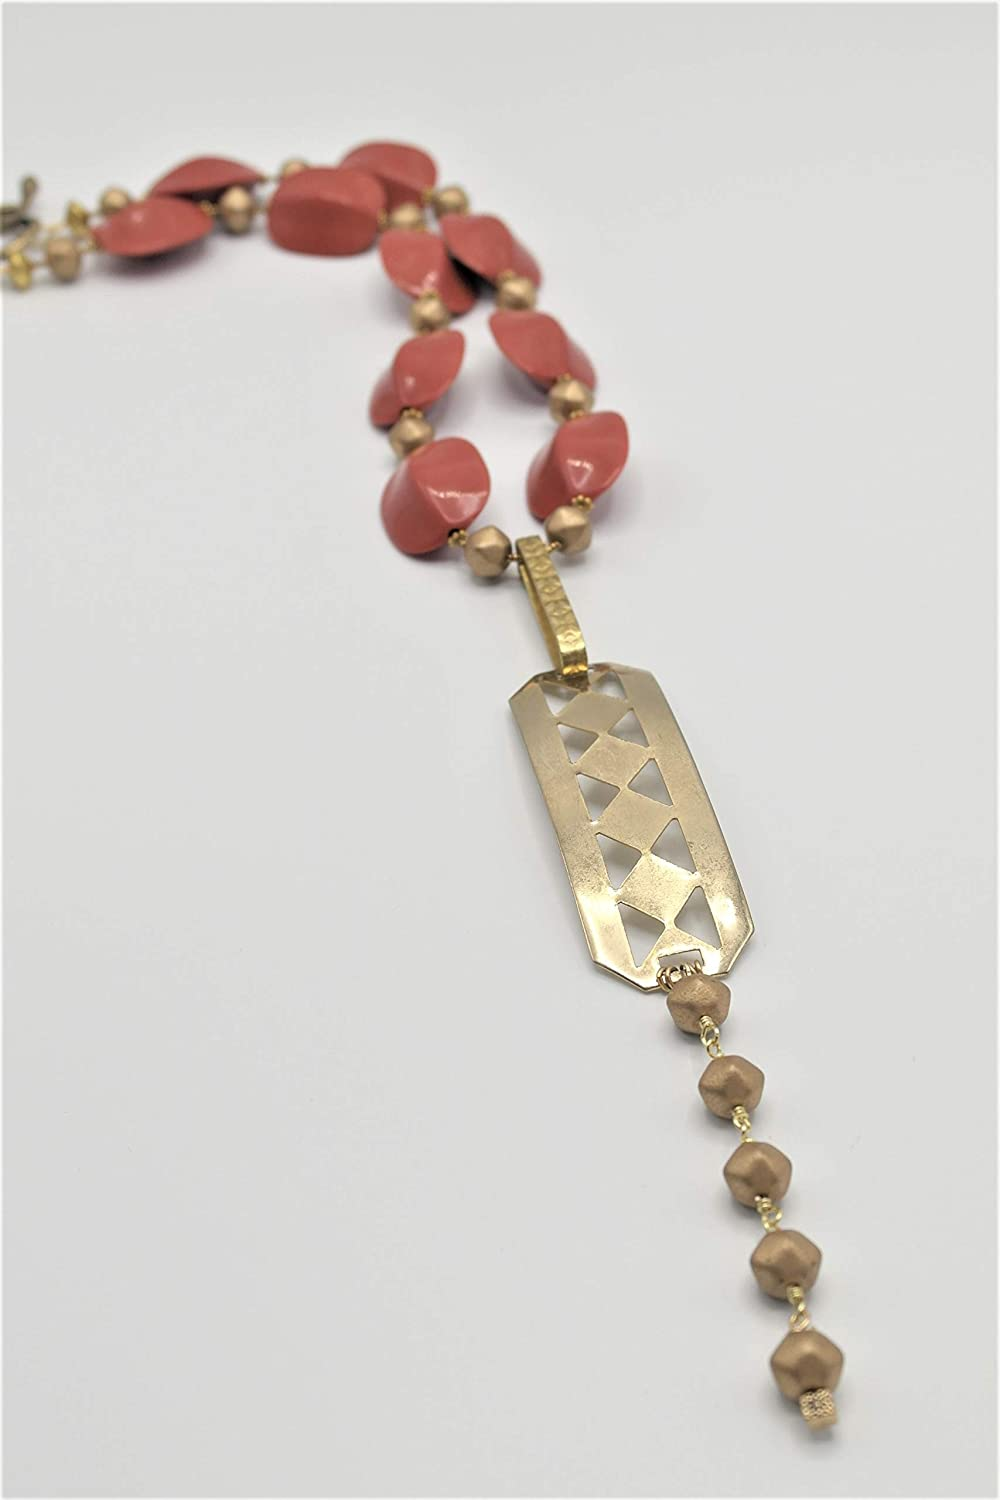 Now on sale Fashionable Dynamo Diva Necklace